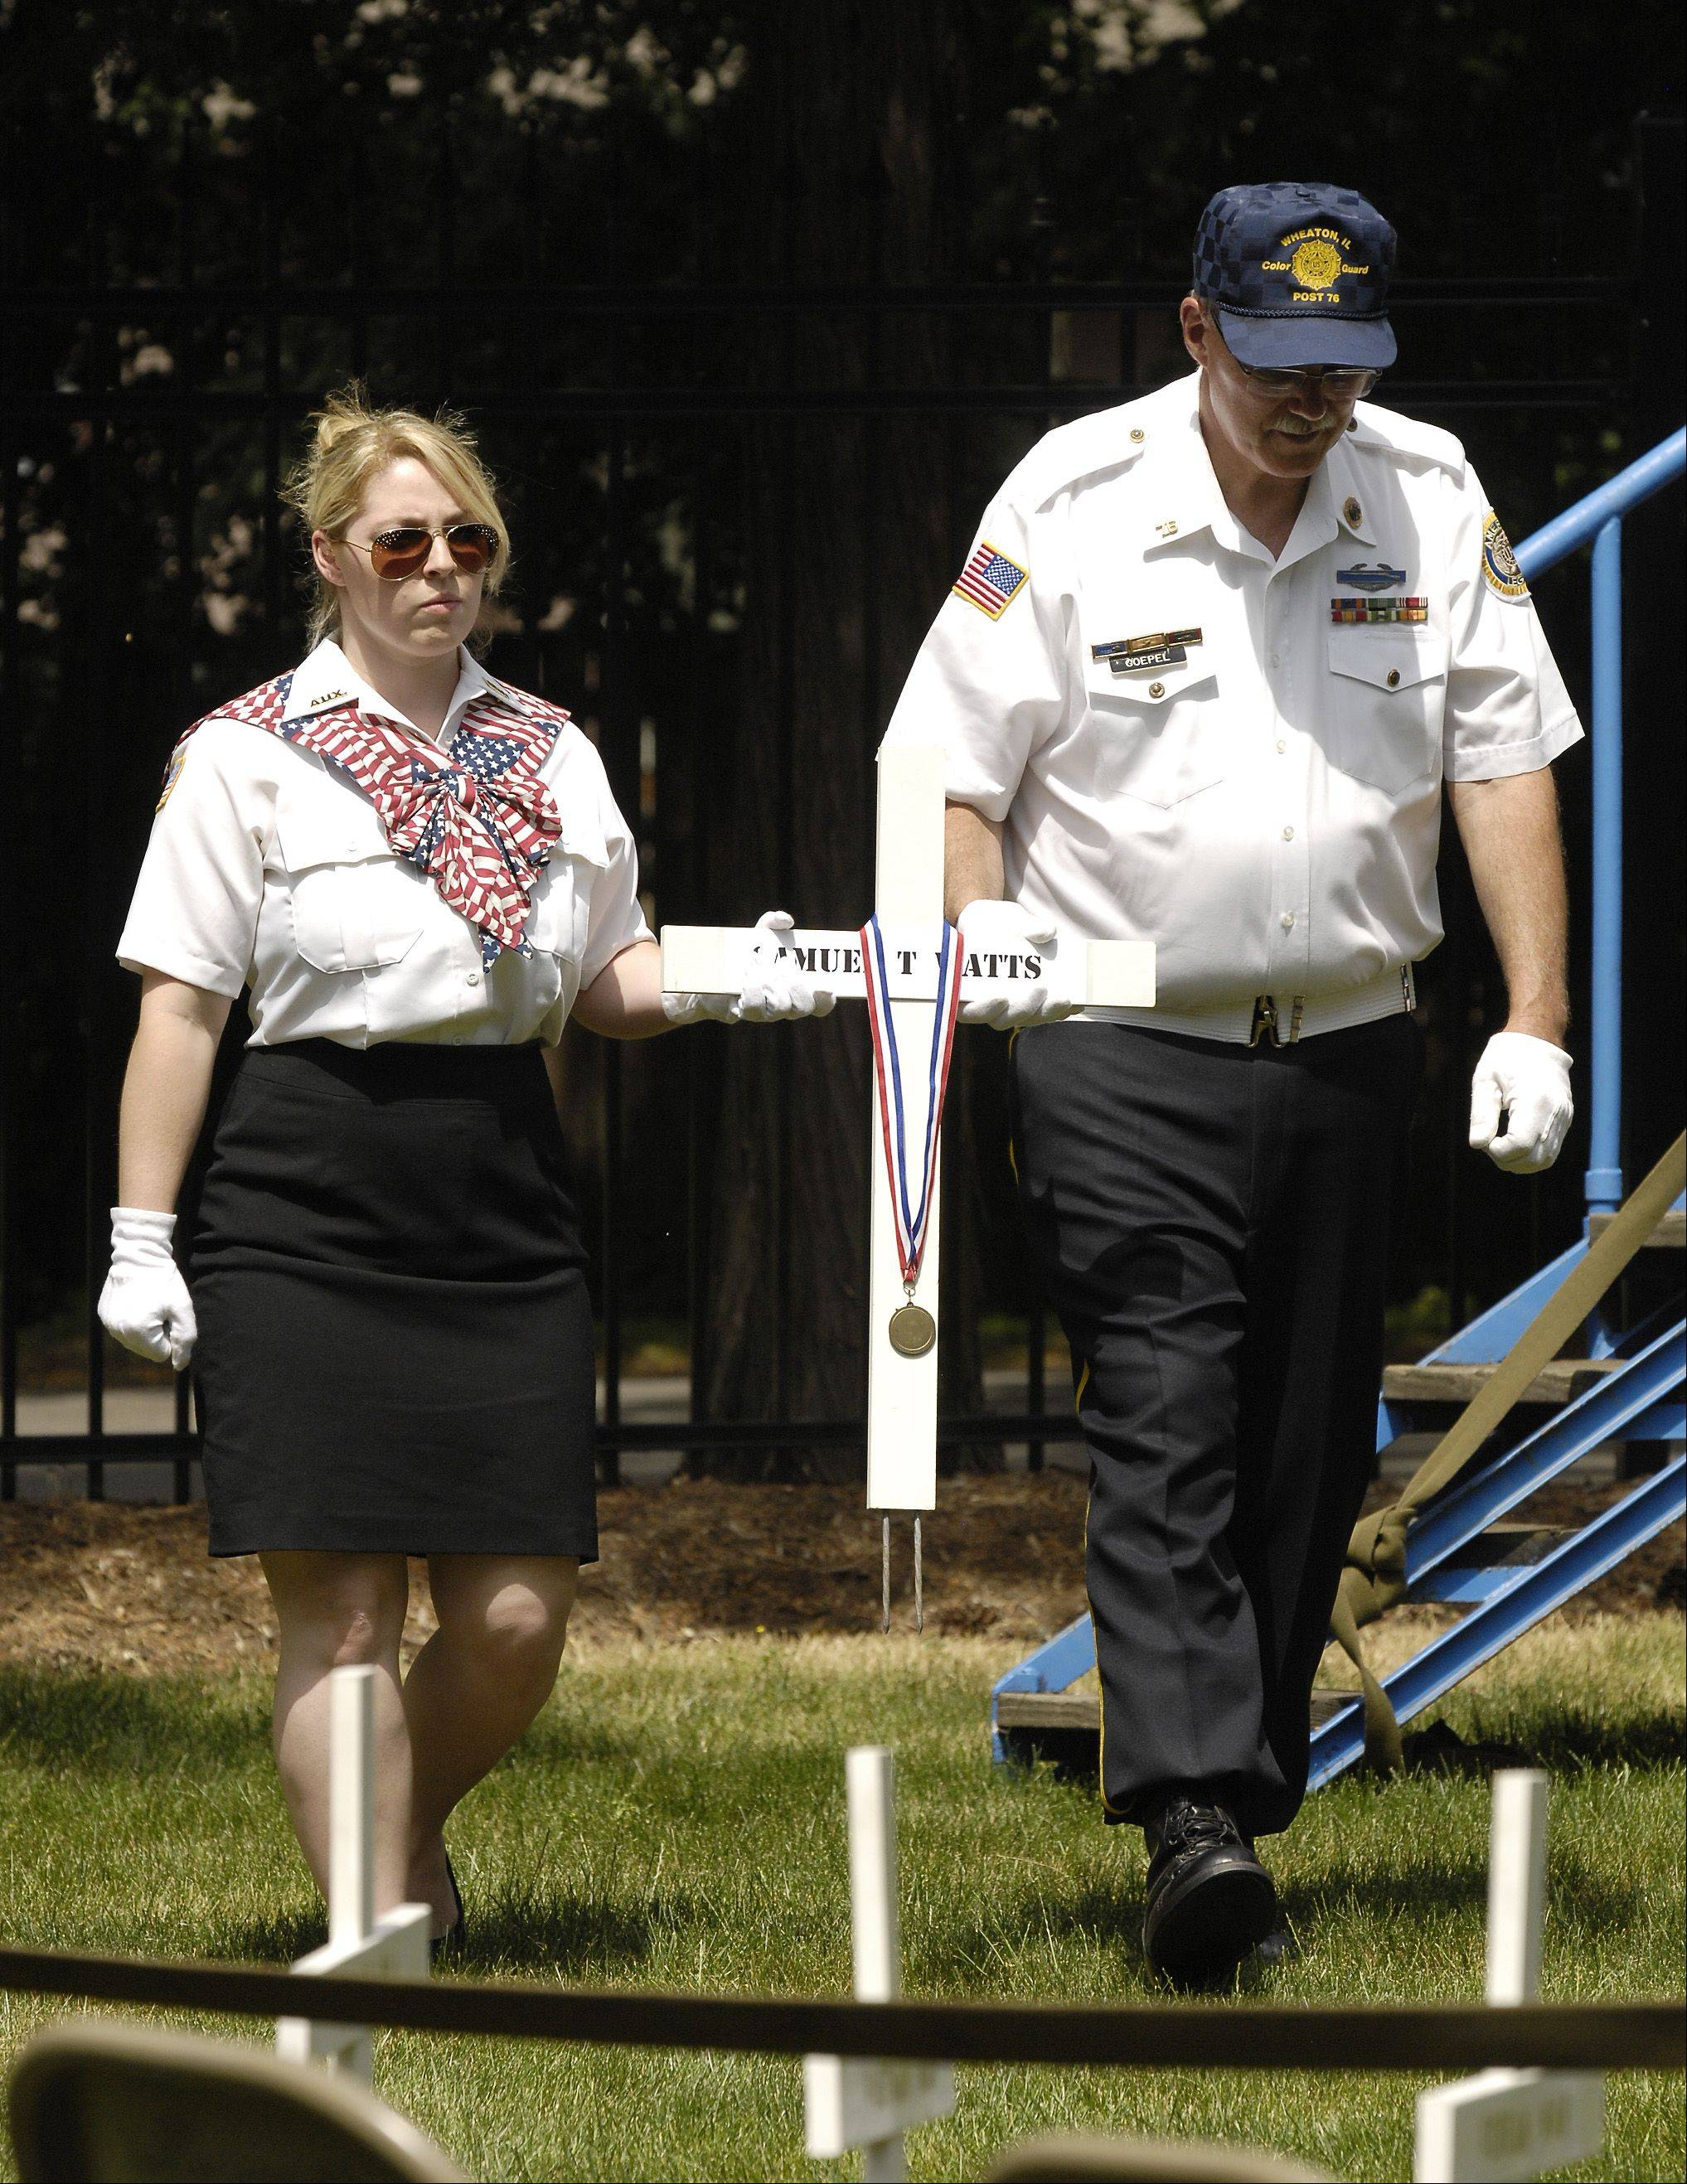 Nicolette Laurich, Jr., vice president of the Ladies Auxiliary of Veterans of Foreign Wars Post 2164, and Jim Goepel, of American Legion Post 67 and VFW Post 2164, carry a wooden cross in honor of U.S. Army Spc. Samuel Watts, who died last week from injuries he suffered in April from a roadside bomb in Afghanistan. The city of Wheaton held its annual Memorial Day ceremony at Wheaton Cemetery Monday.